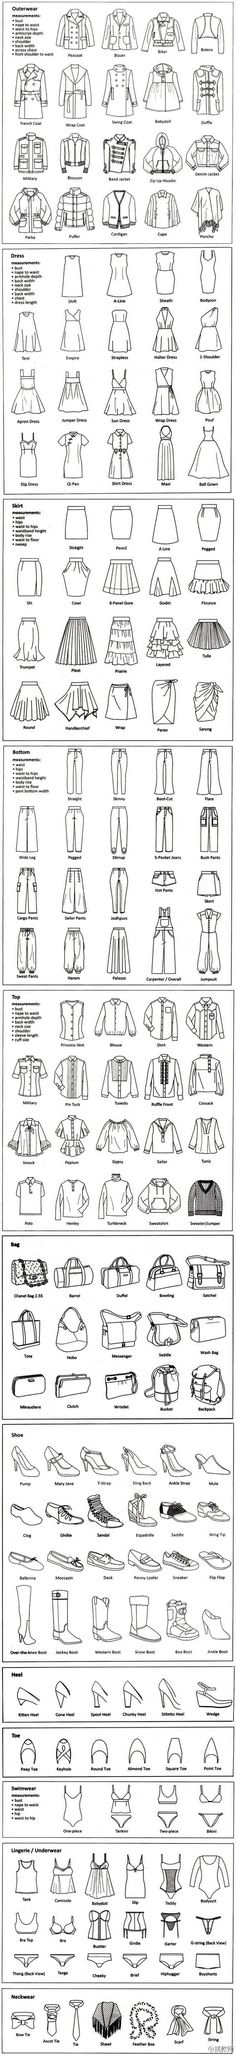 Garment Fashion Terminology - some of these are a little obvious, but I geek out over graphics like these.